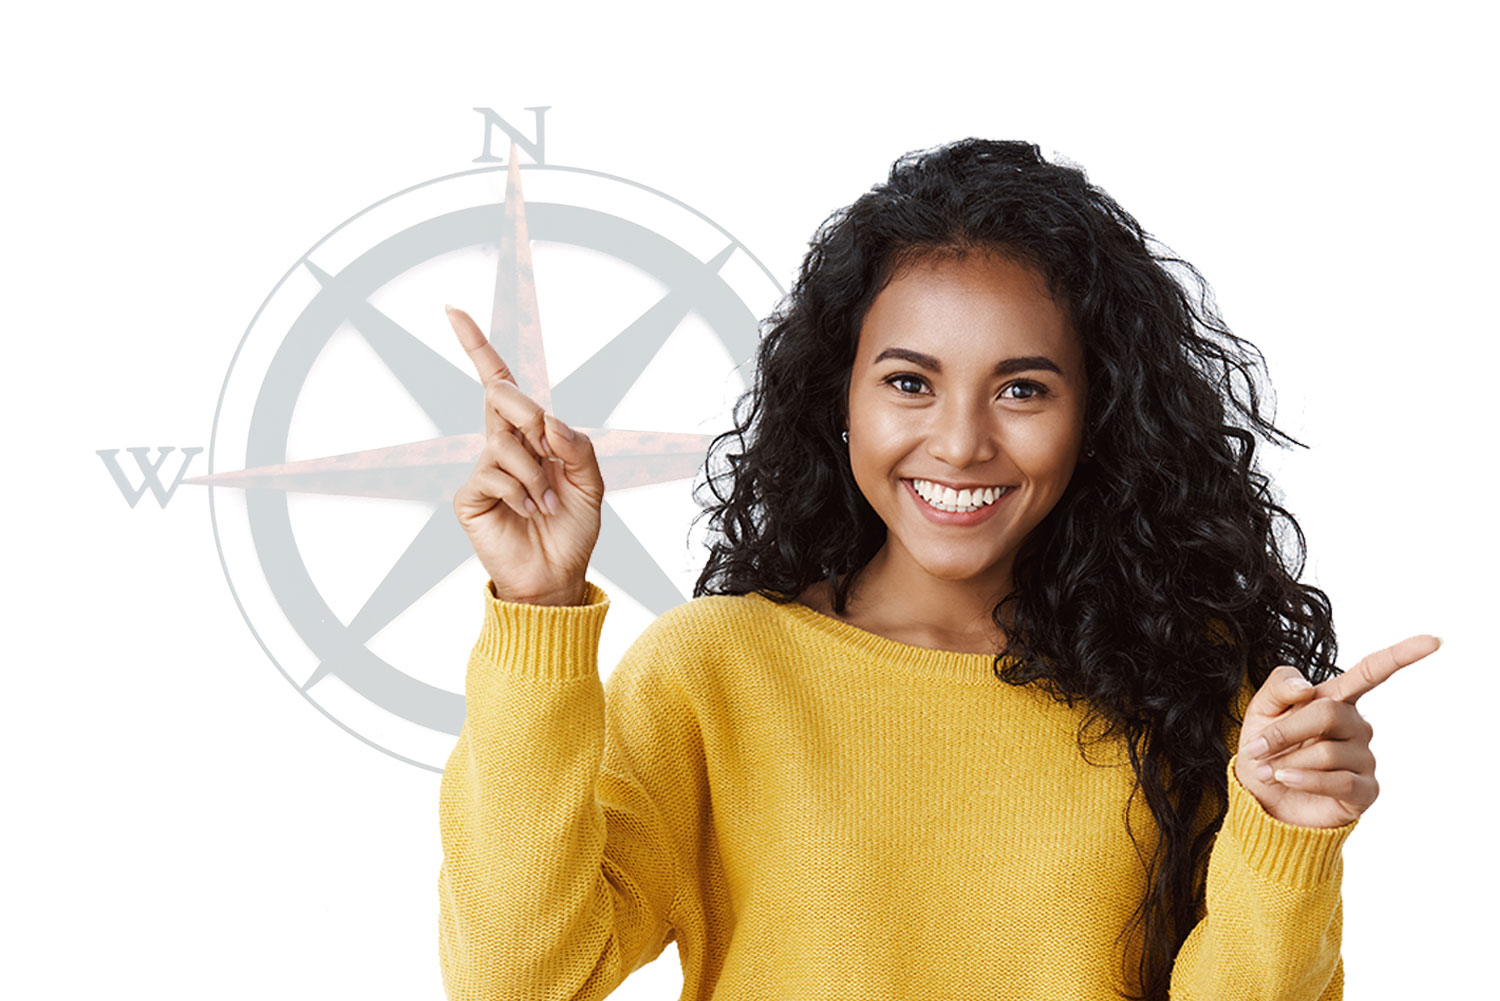 image shows a woman pointing in two directions. A compass appears in the background.